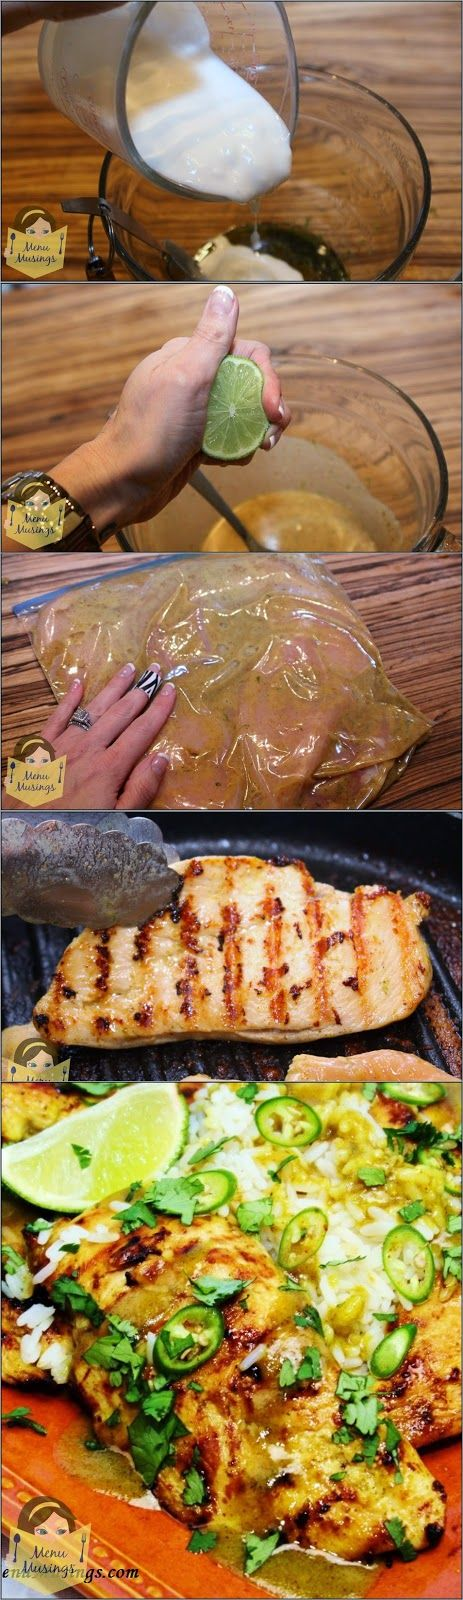 Step-by-step photo tutorial and video to making this Indonesian inspired Coconut Lime Chicken. easy asian cooking, easy chicken recipes, family friendly meals, kid friendly meals, kids in the kitchen, taxi cab moms, quick meals,